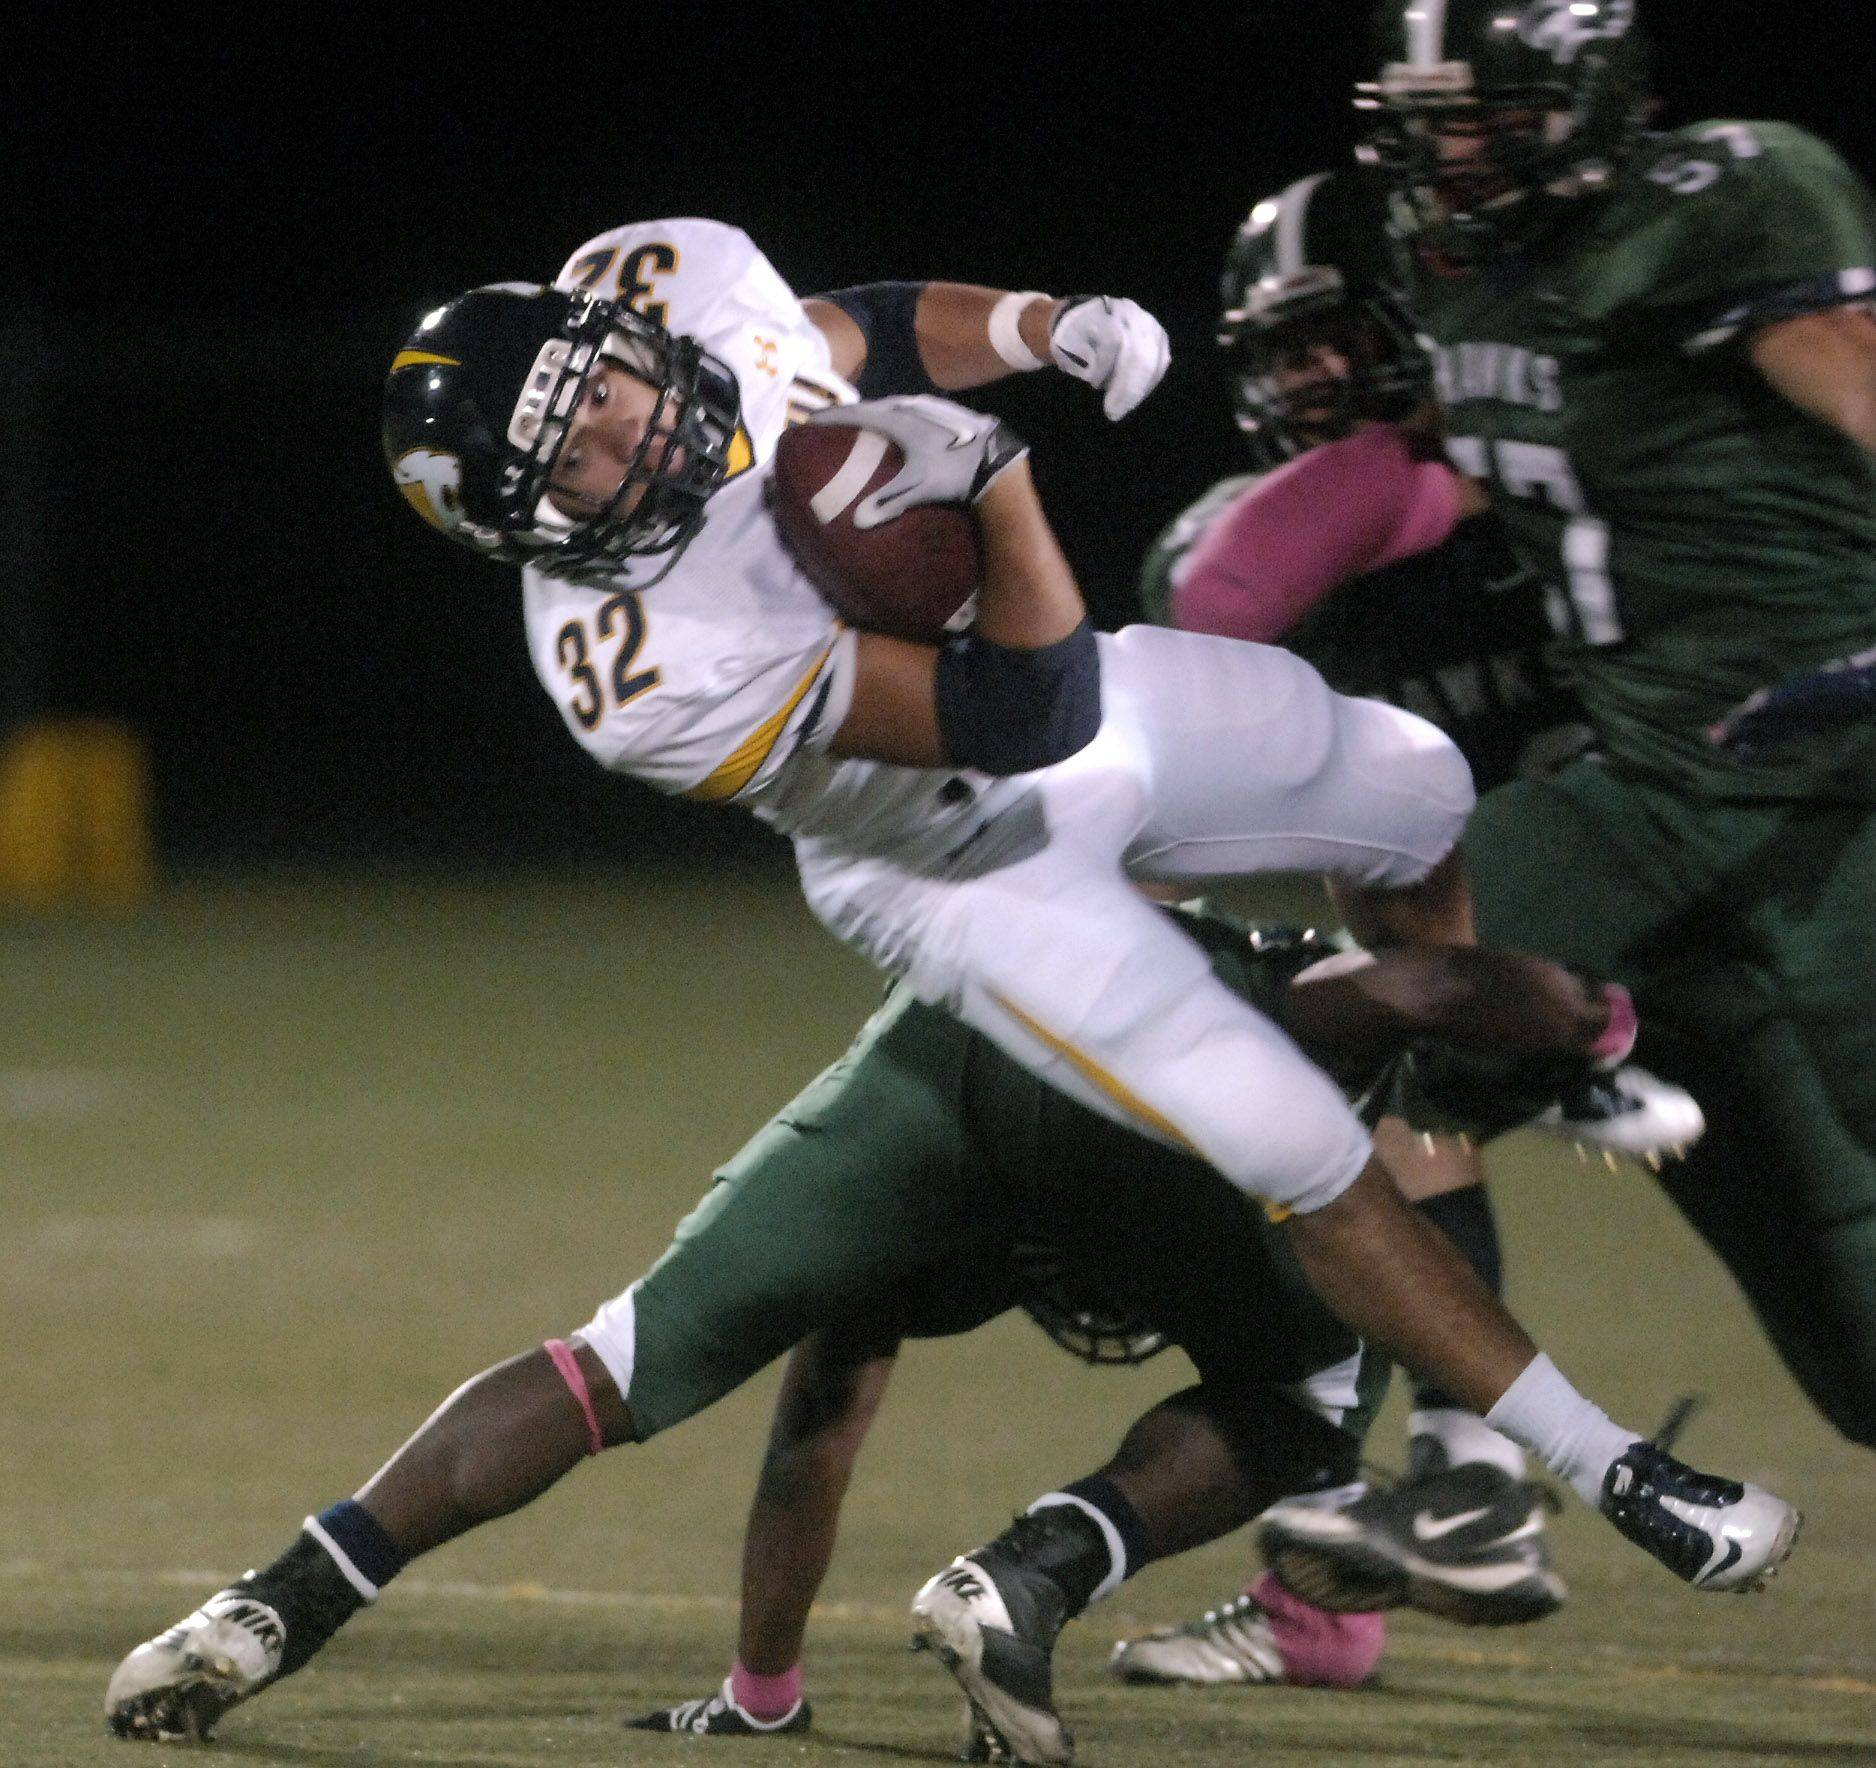 Neuqua Valley's Vai Suliafu is tripped up by a Bartlett tackler during Friday's game at Millennium Field in Streamwood.